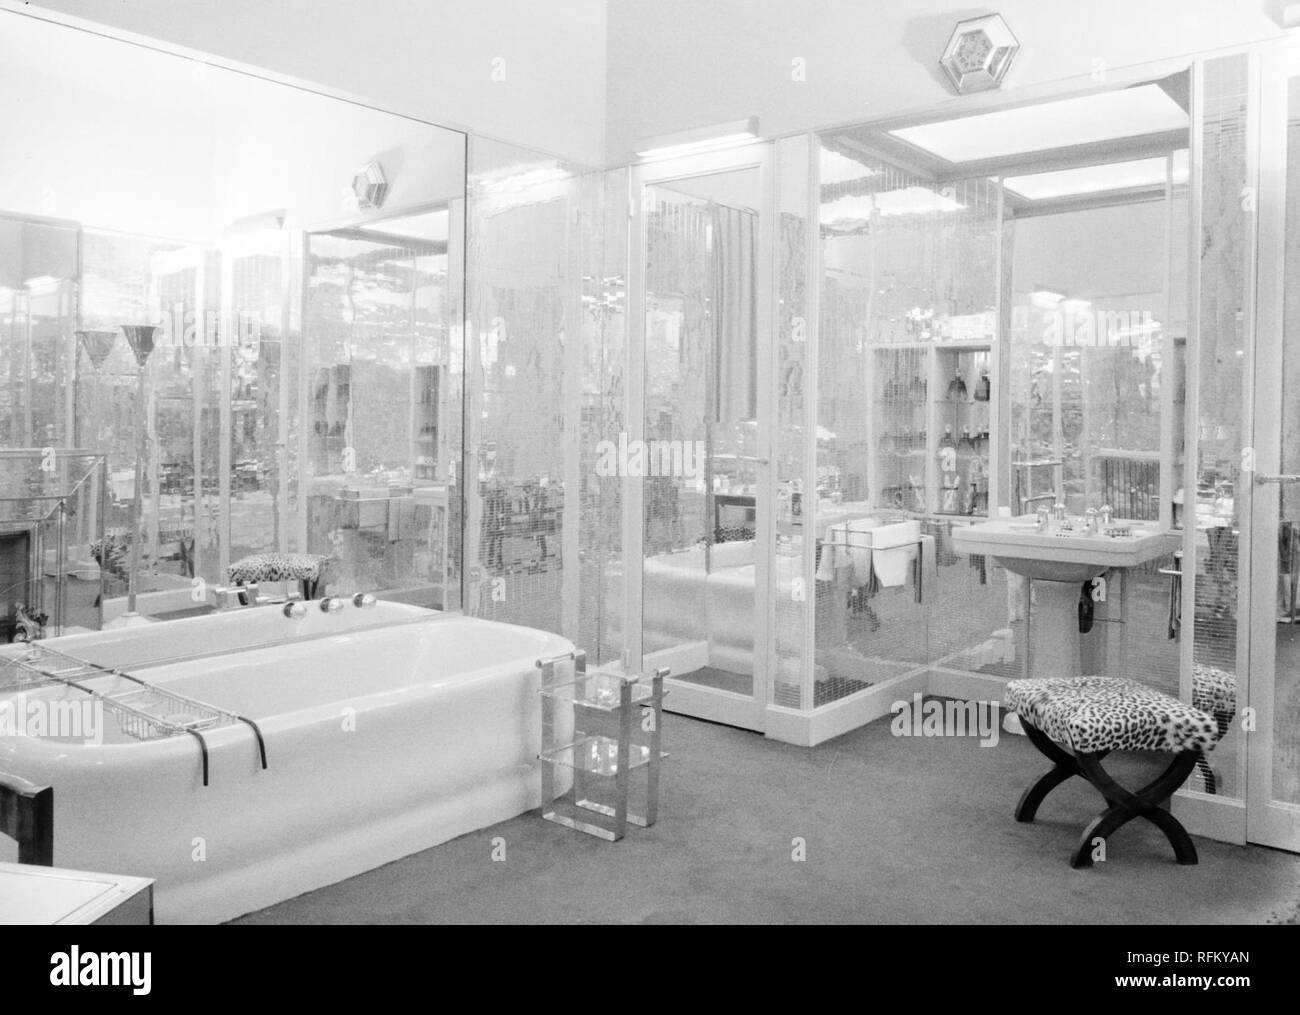 S&k Badkamer 8750 Stock Photos 8750 Stock Images Alamy